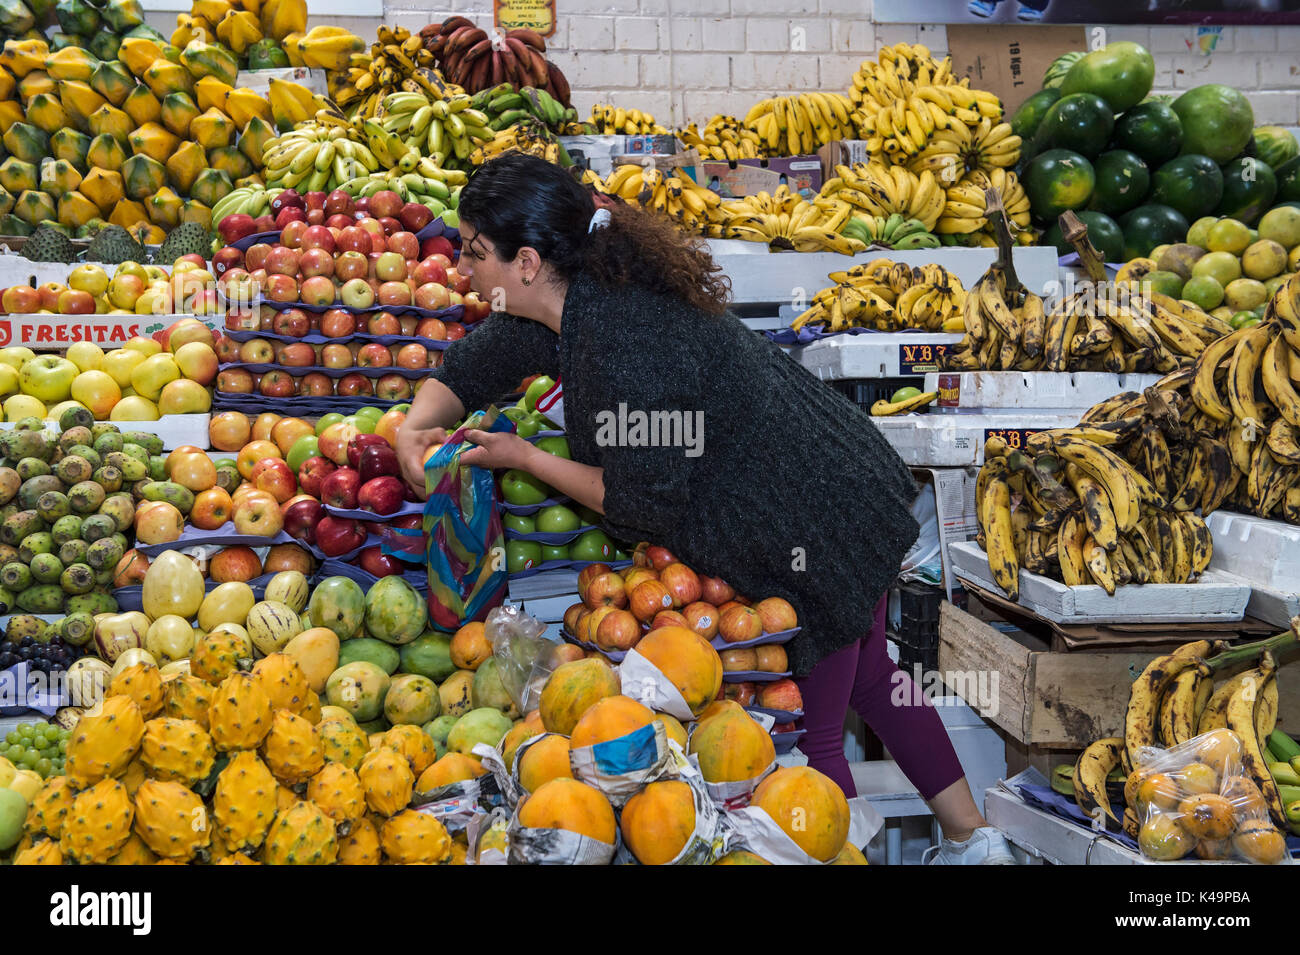 Colorful Fruit Stand With Exotic Fruits On Display, Inaquito Market Food Court, Quito, Ecuador - Stock Image